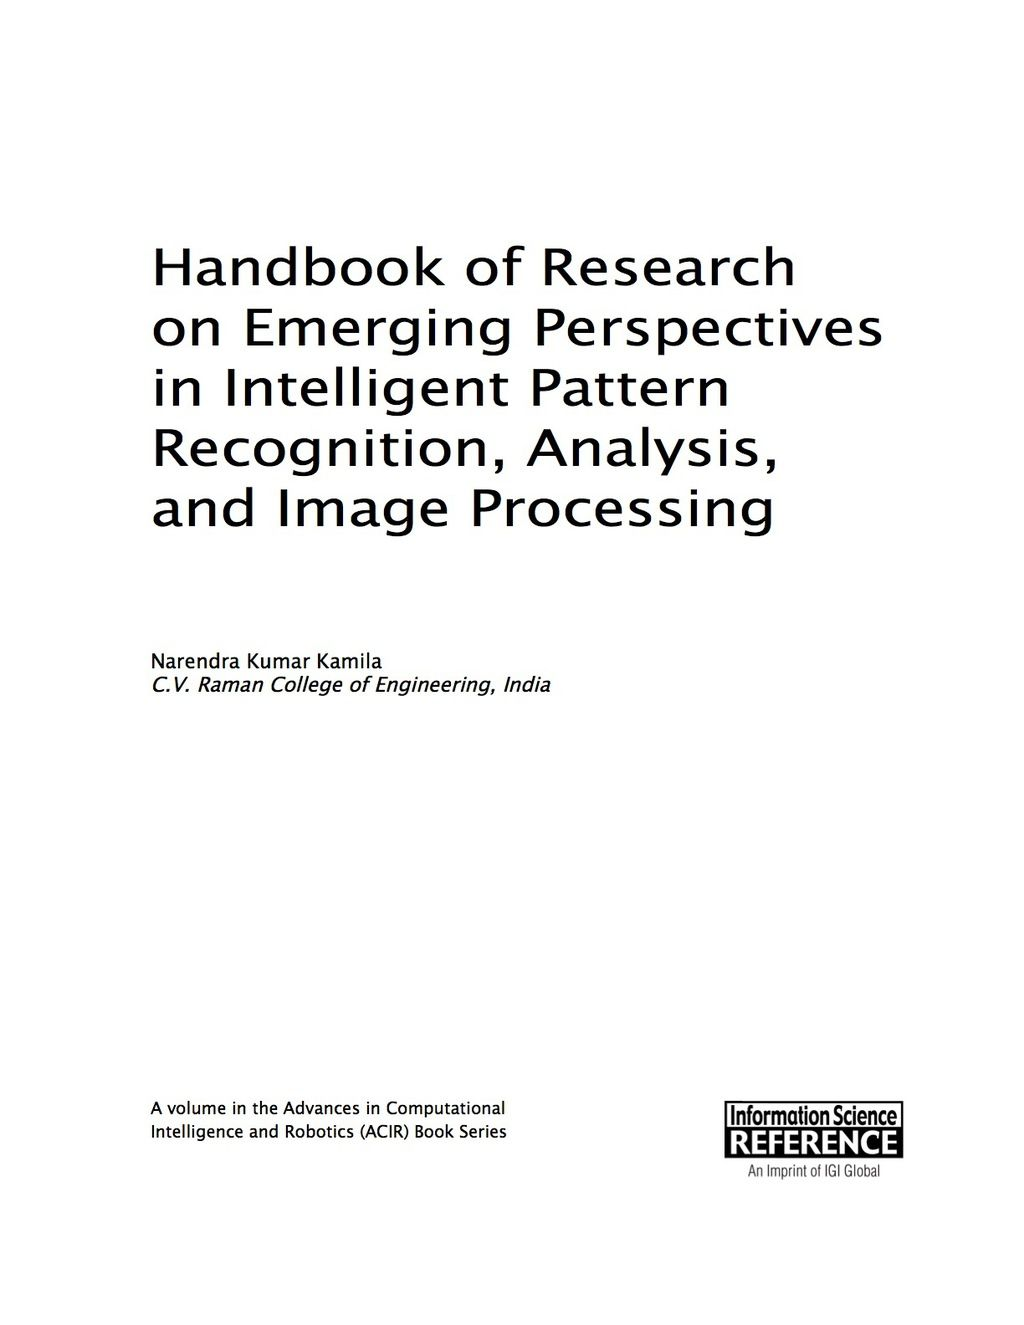 Handbook Of Research On Emerging Perspectives In Intelligent